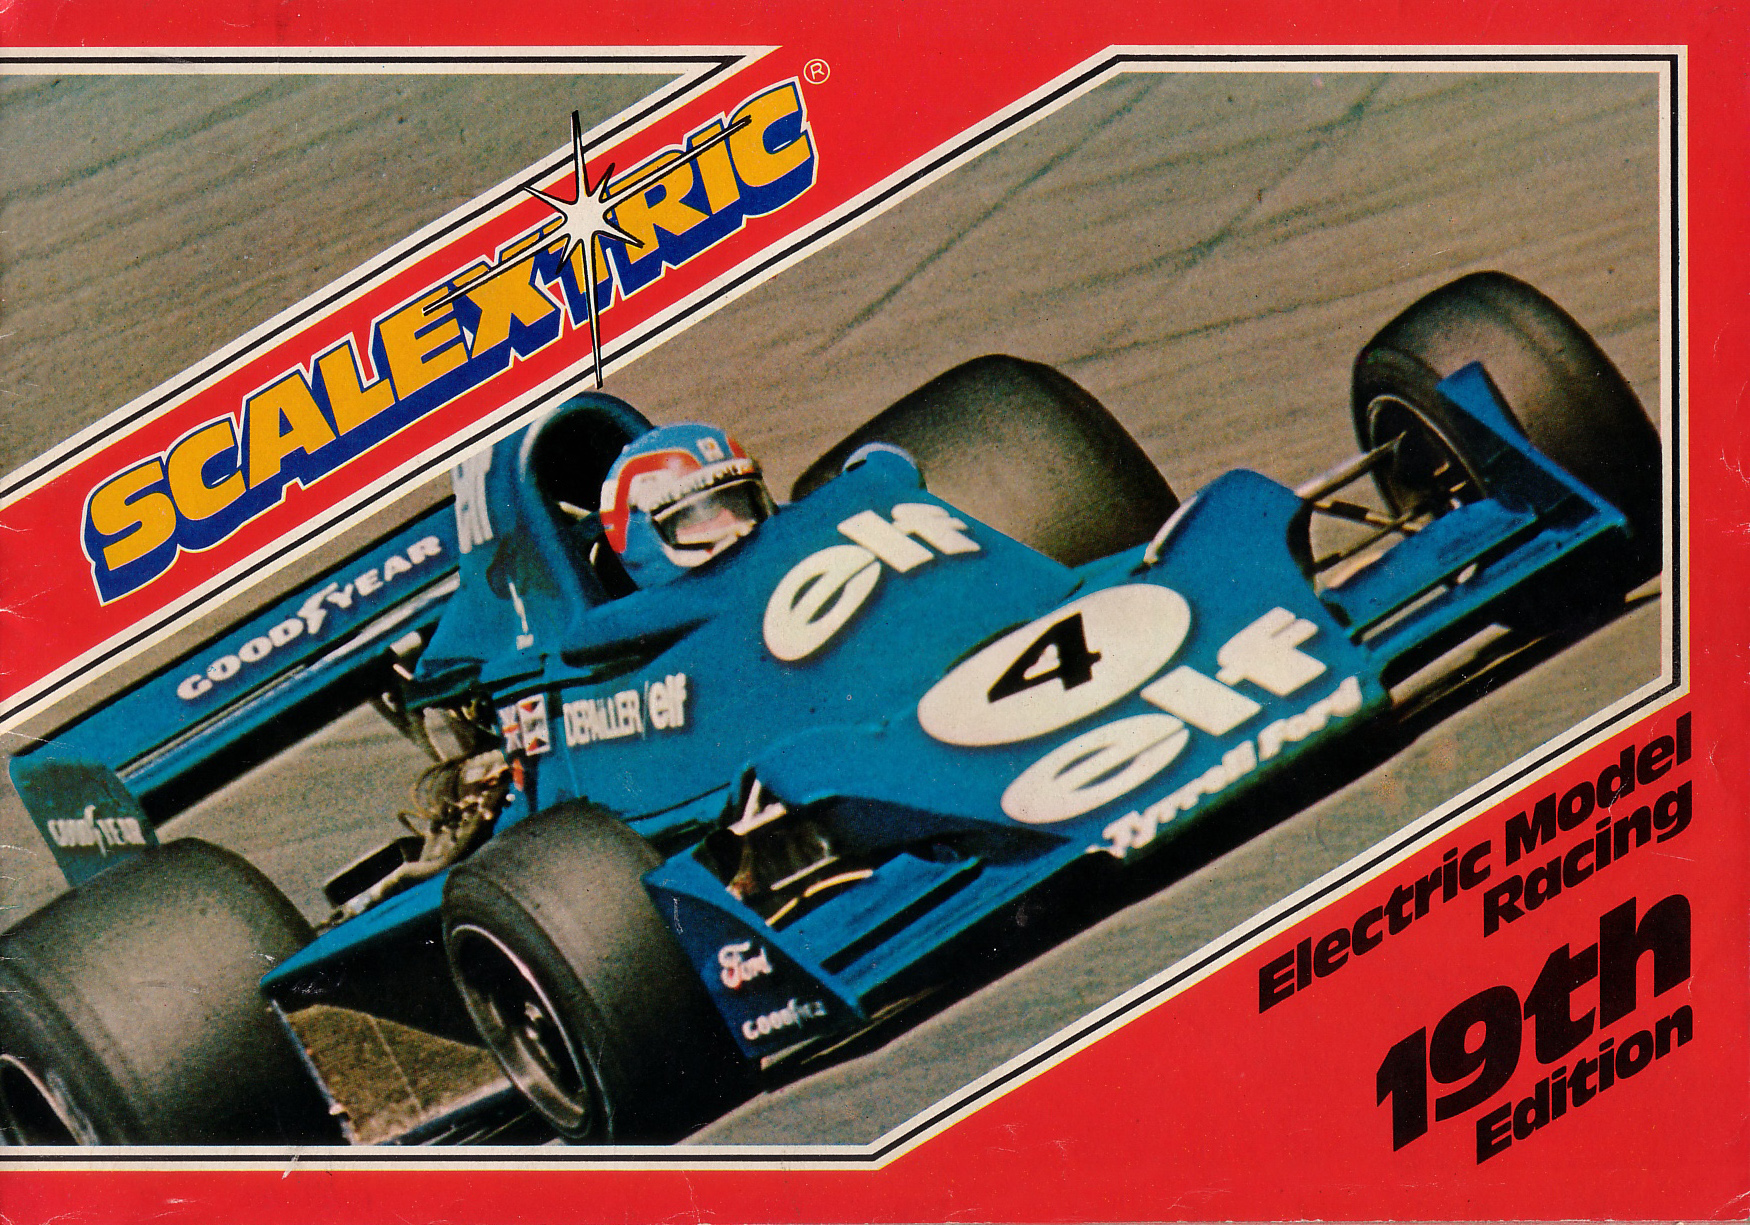 scalextric_electric_model_racing_catalog_brochures_and_catalogs_3c8d8bef-939f-4115-8b4f-17014351e33c.jpg